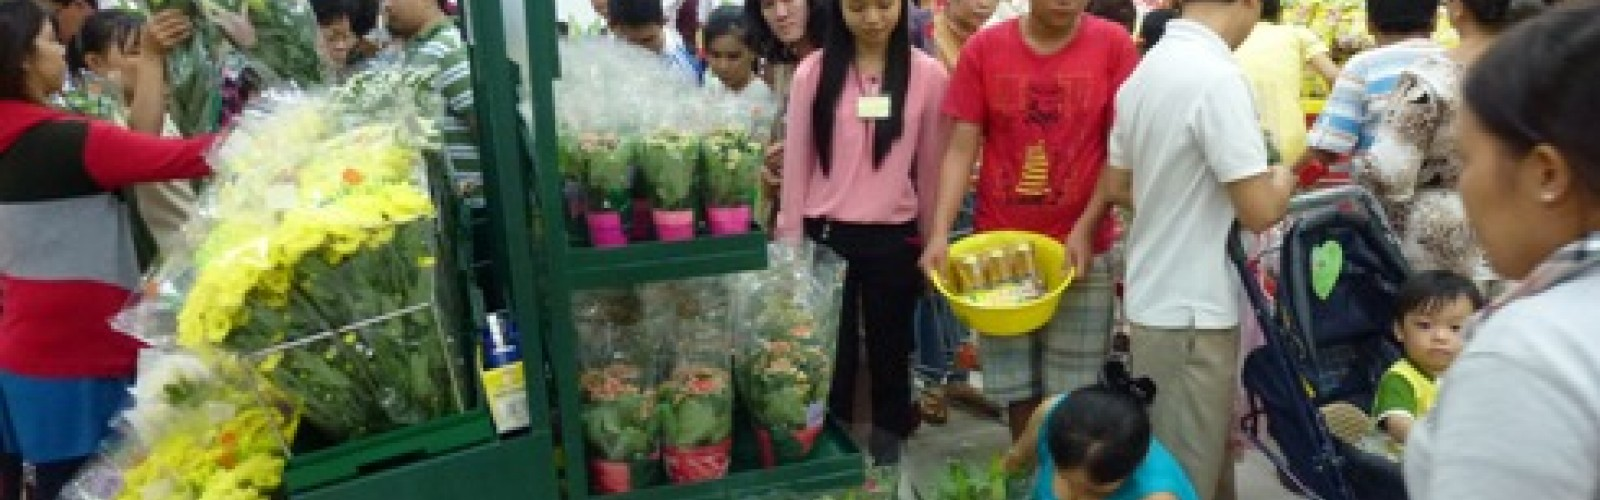 Dalat Hasfarm opened new booth at BigC Binh Duong